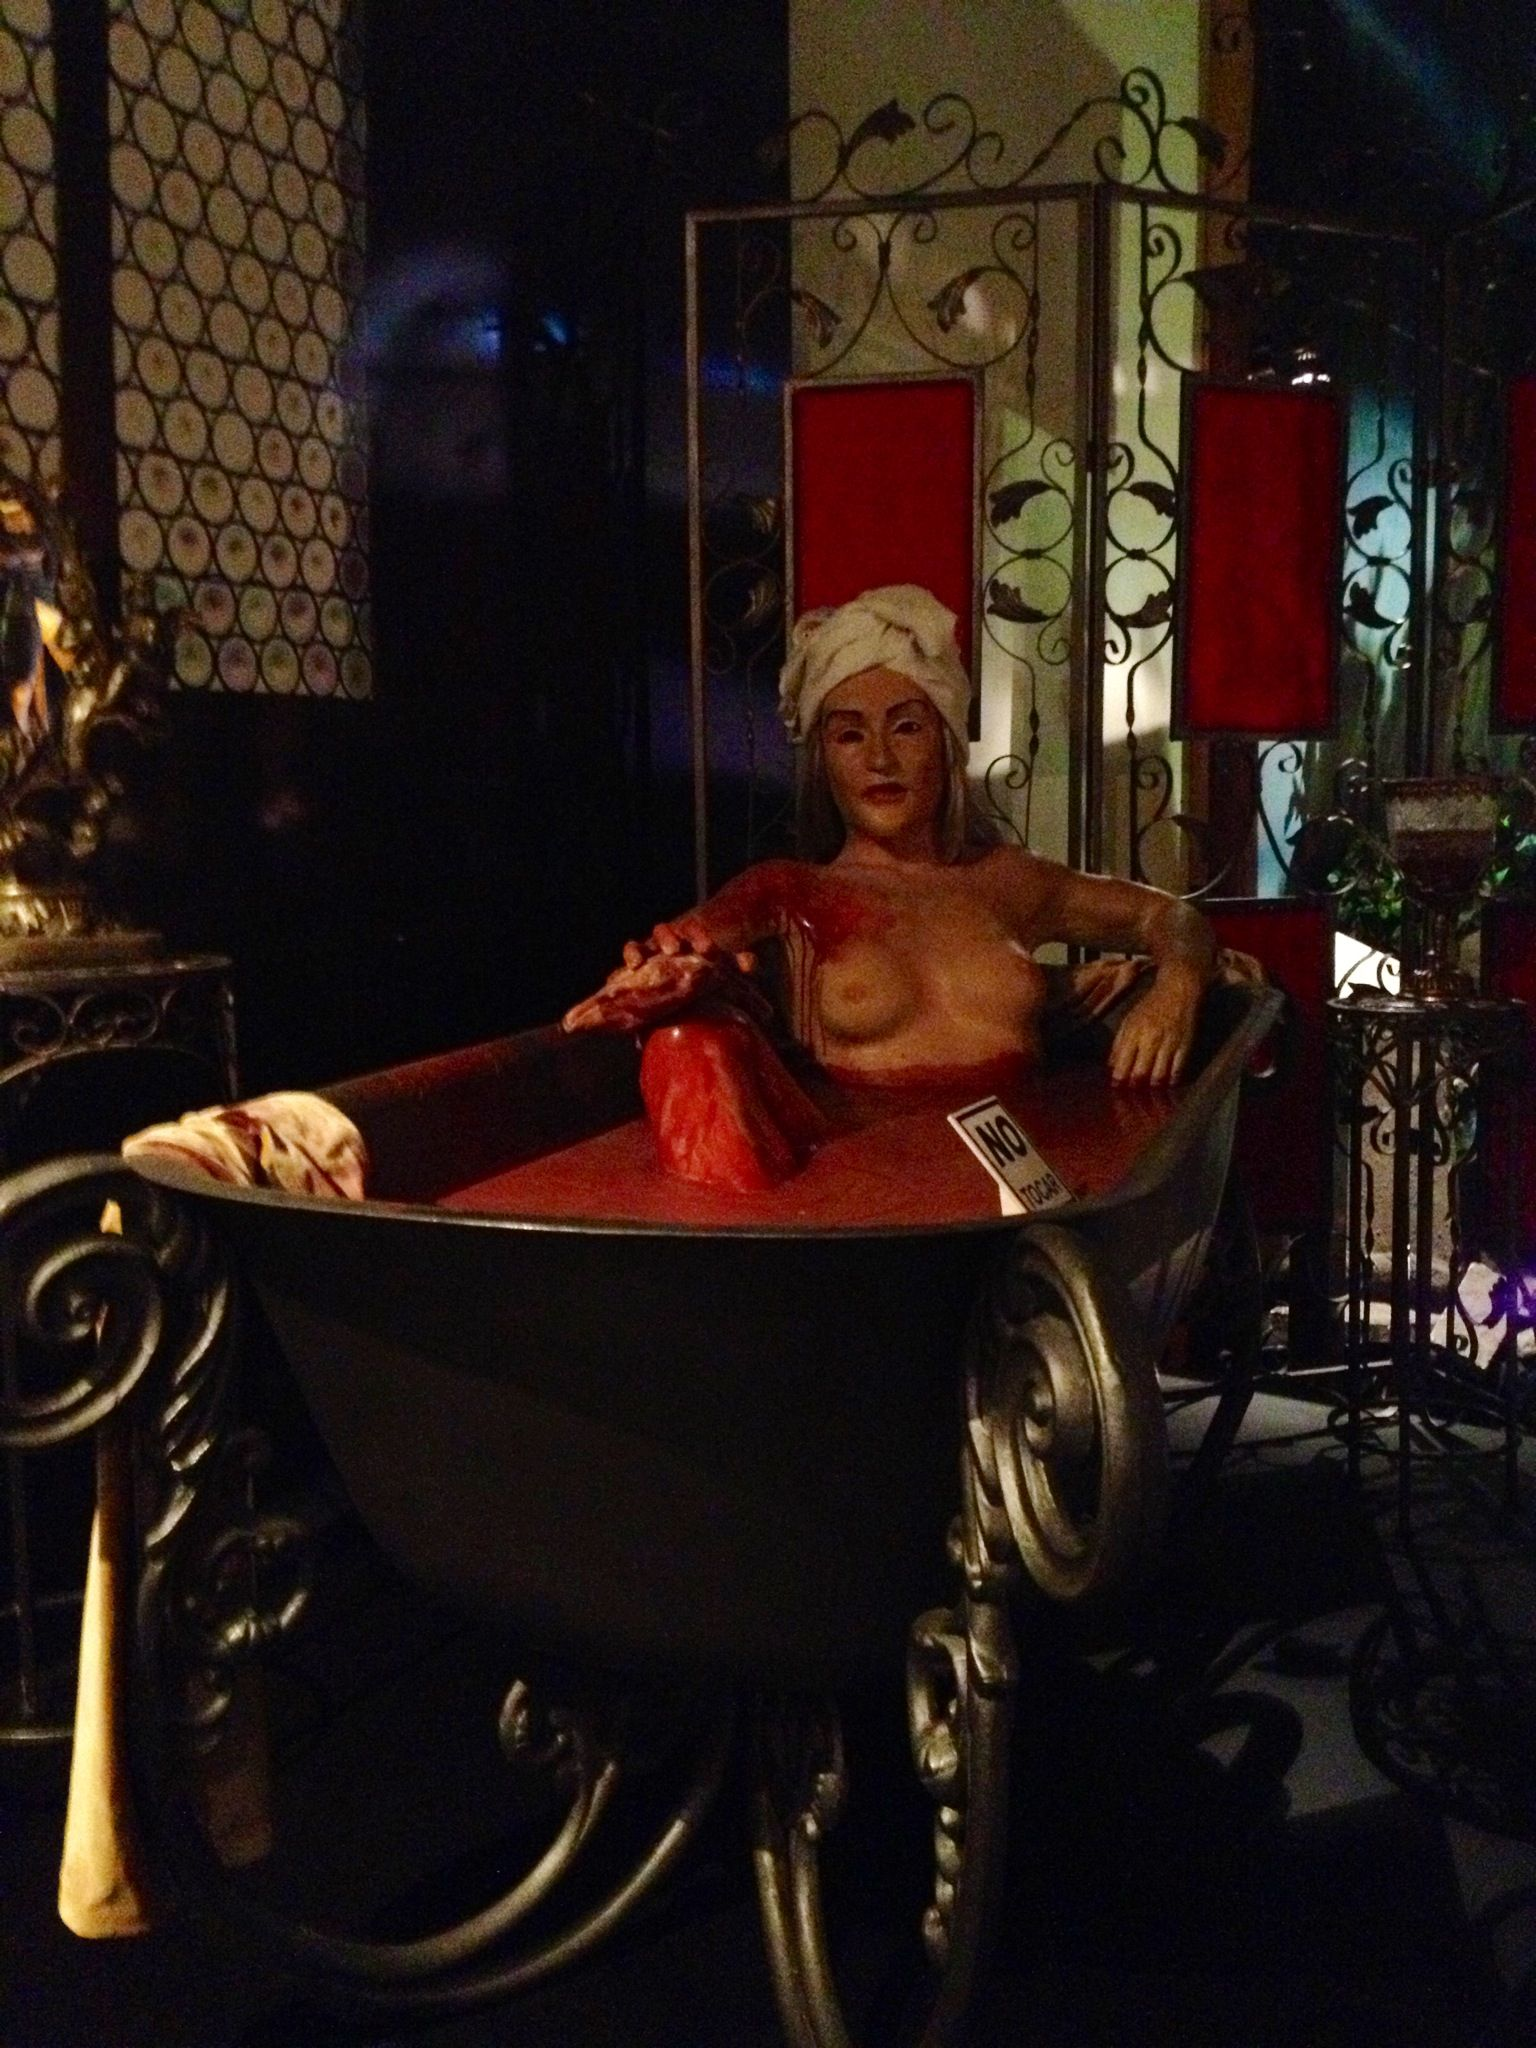 elizabeth bathory research paper The infamous lady, countess erzsebet(elizabeth)bathory is reviled as the world's worst female serial killer, countess báthory is said to have bathed in the blood of the 650 servant girls she tortured and murdered.